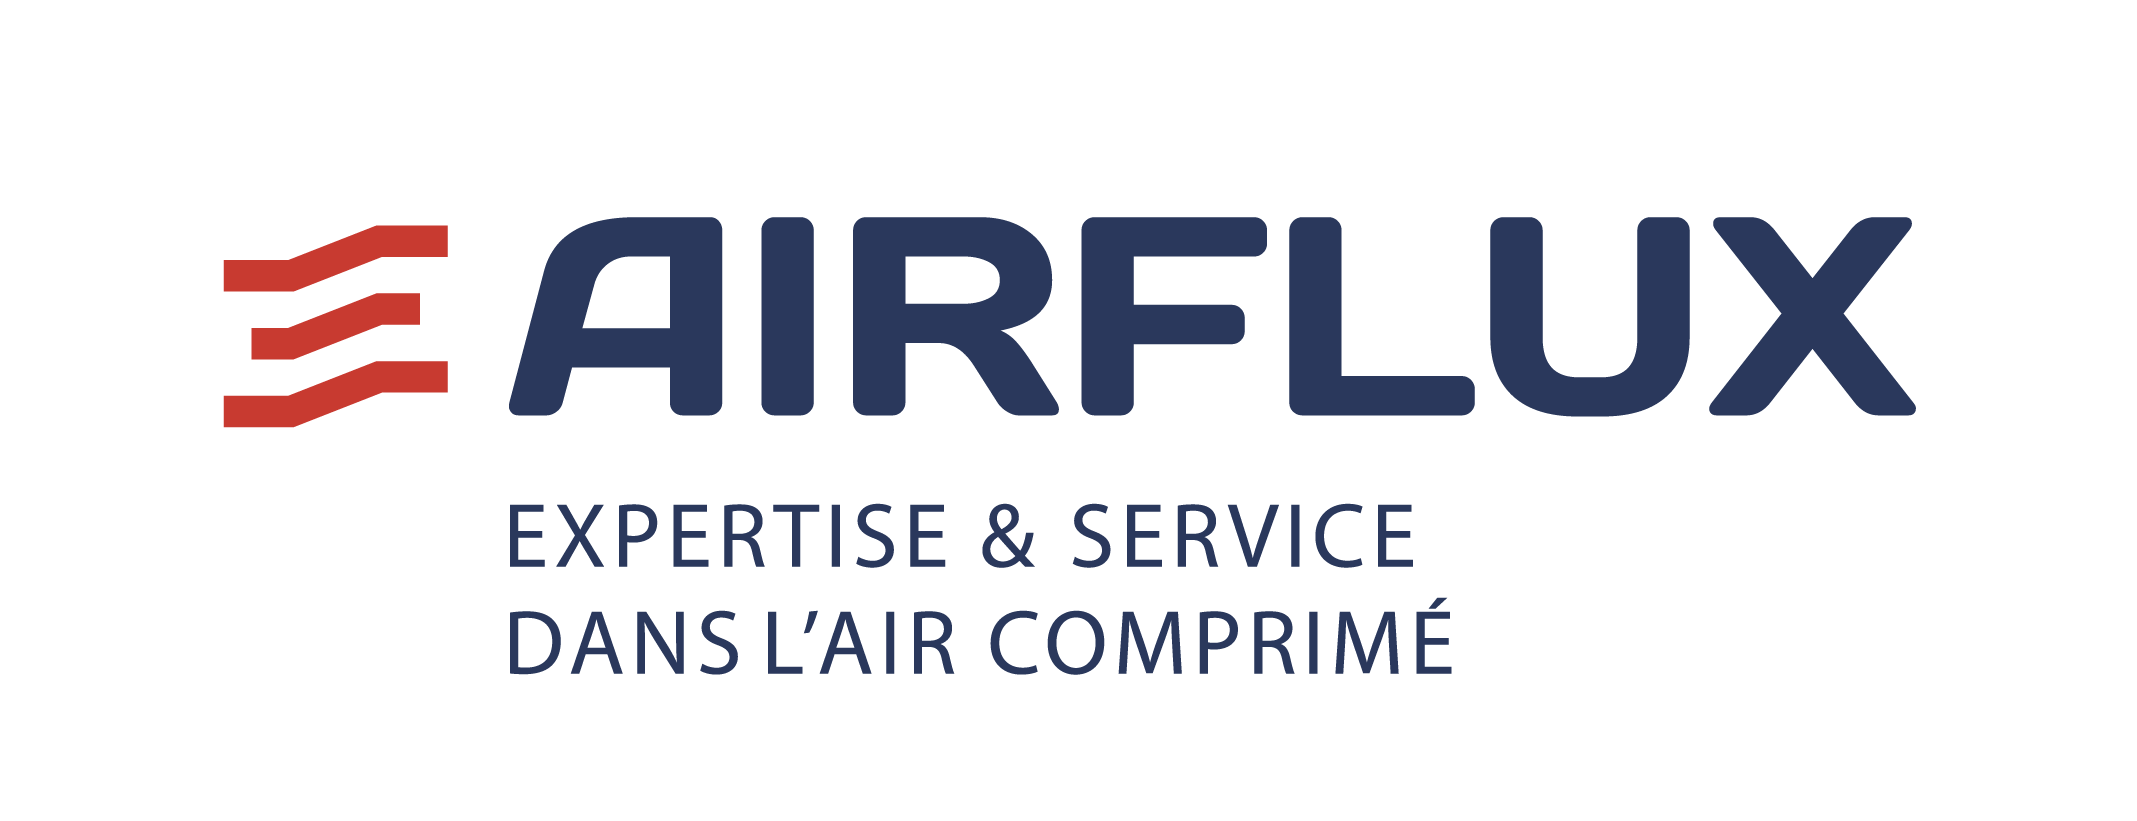 1631107669-airflux-groupe-.png